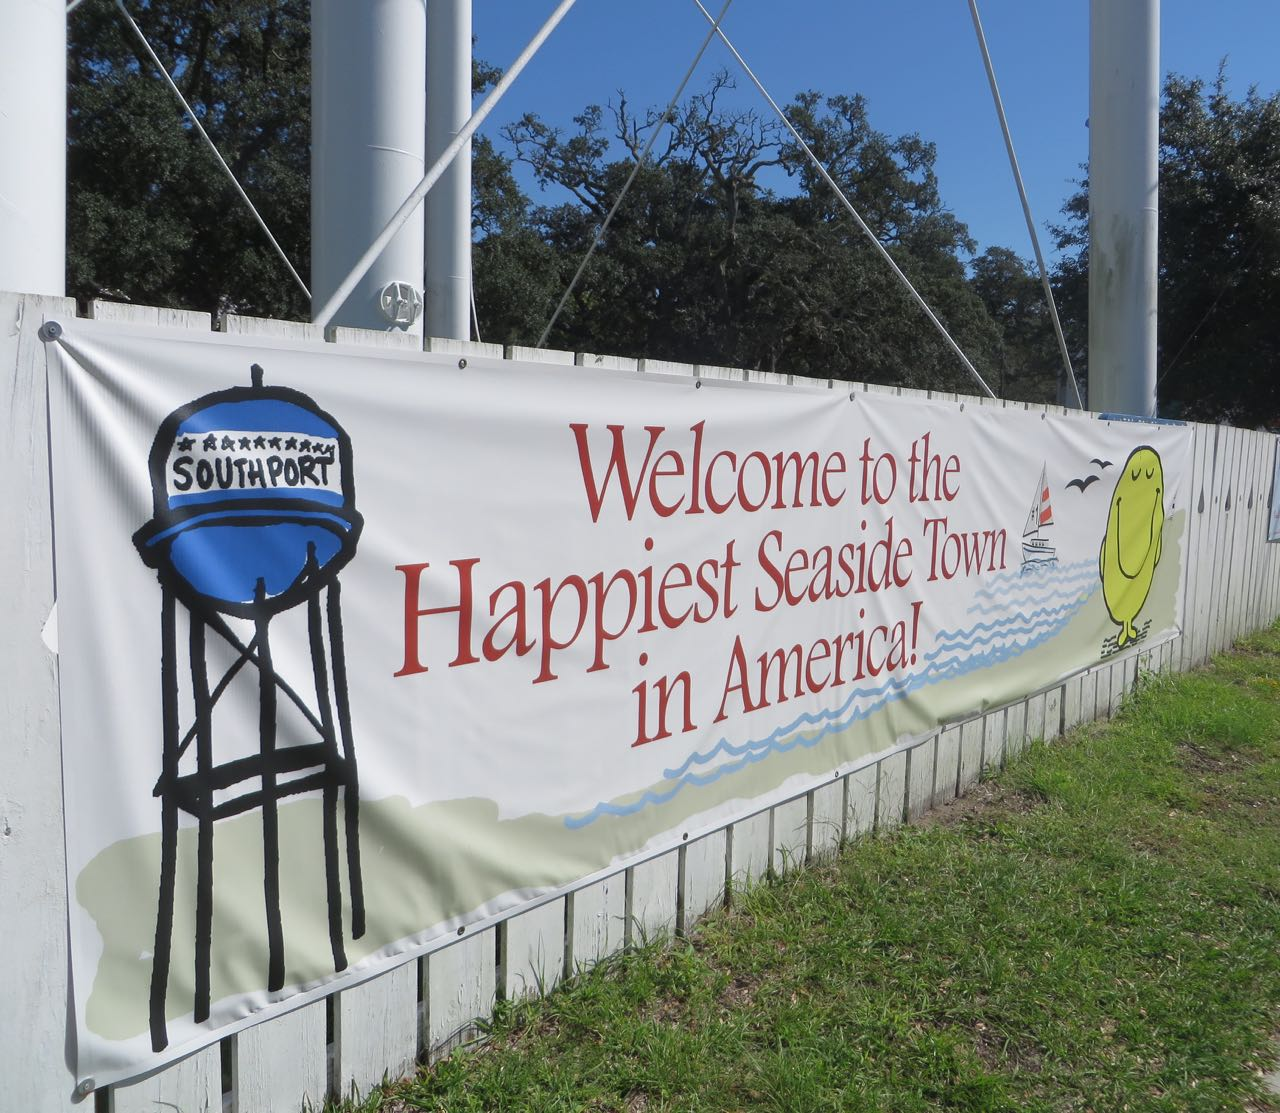 Southport The Happiest Seaside Town In America Kindred